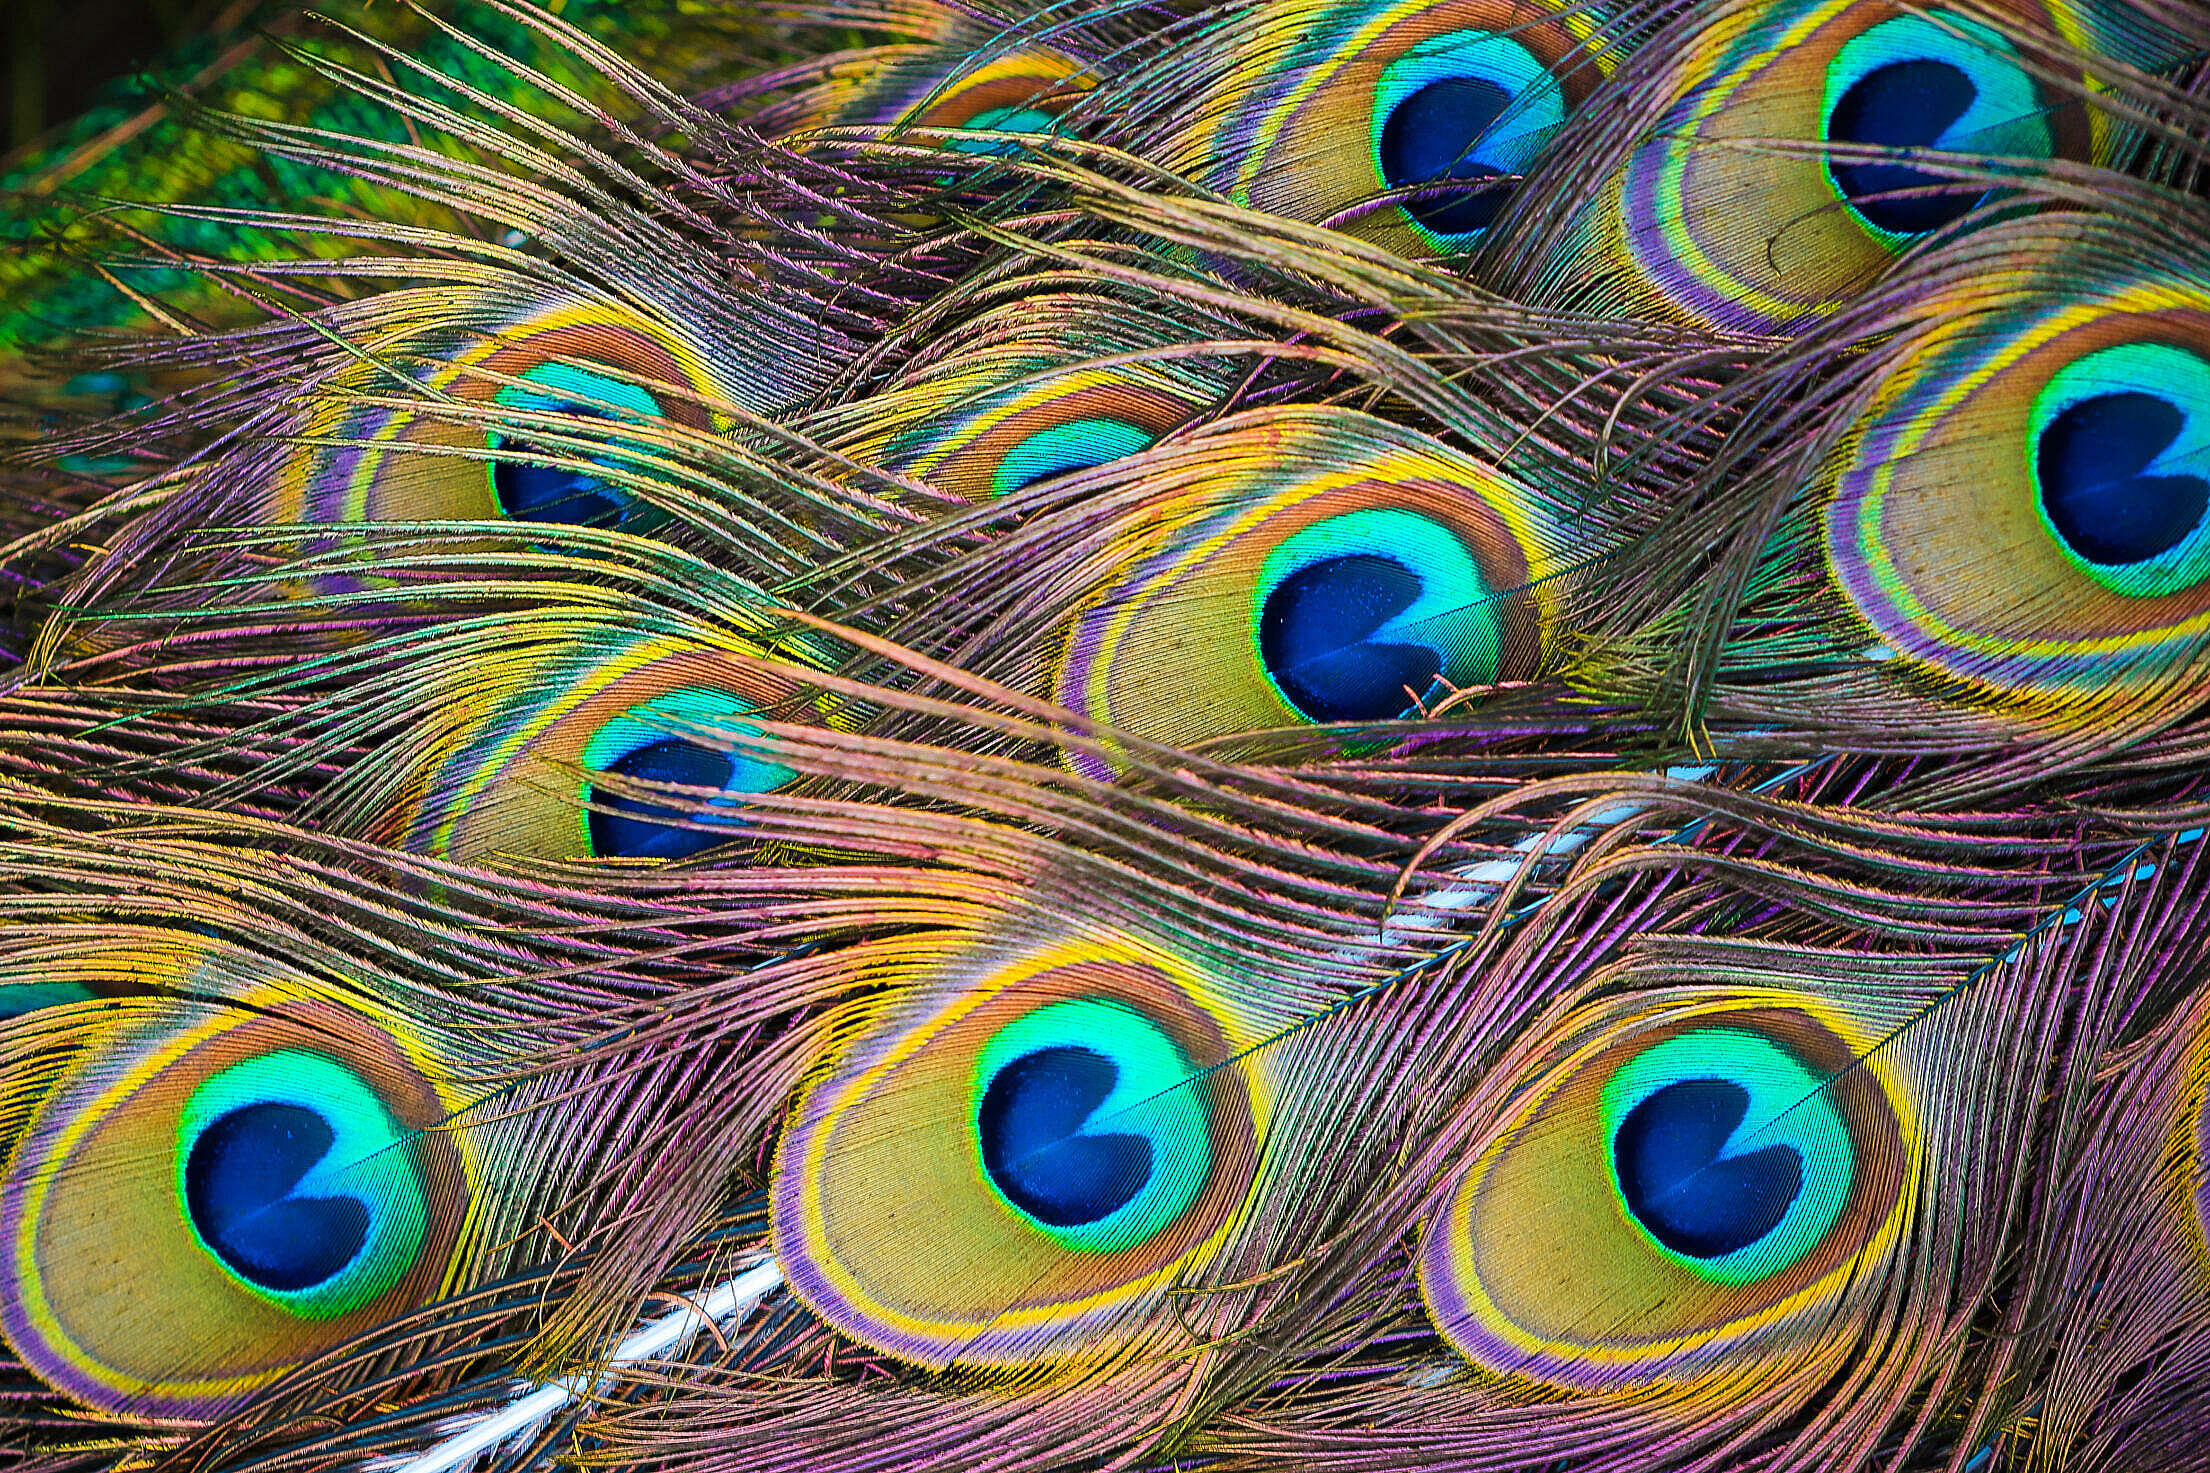 Colorful Peacock Feathers Free Stock Photo